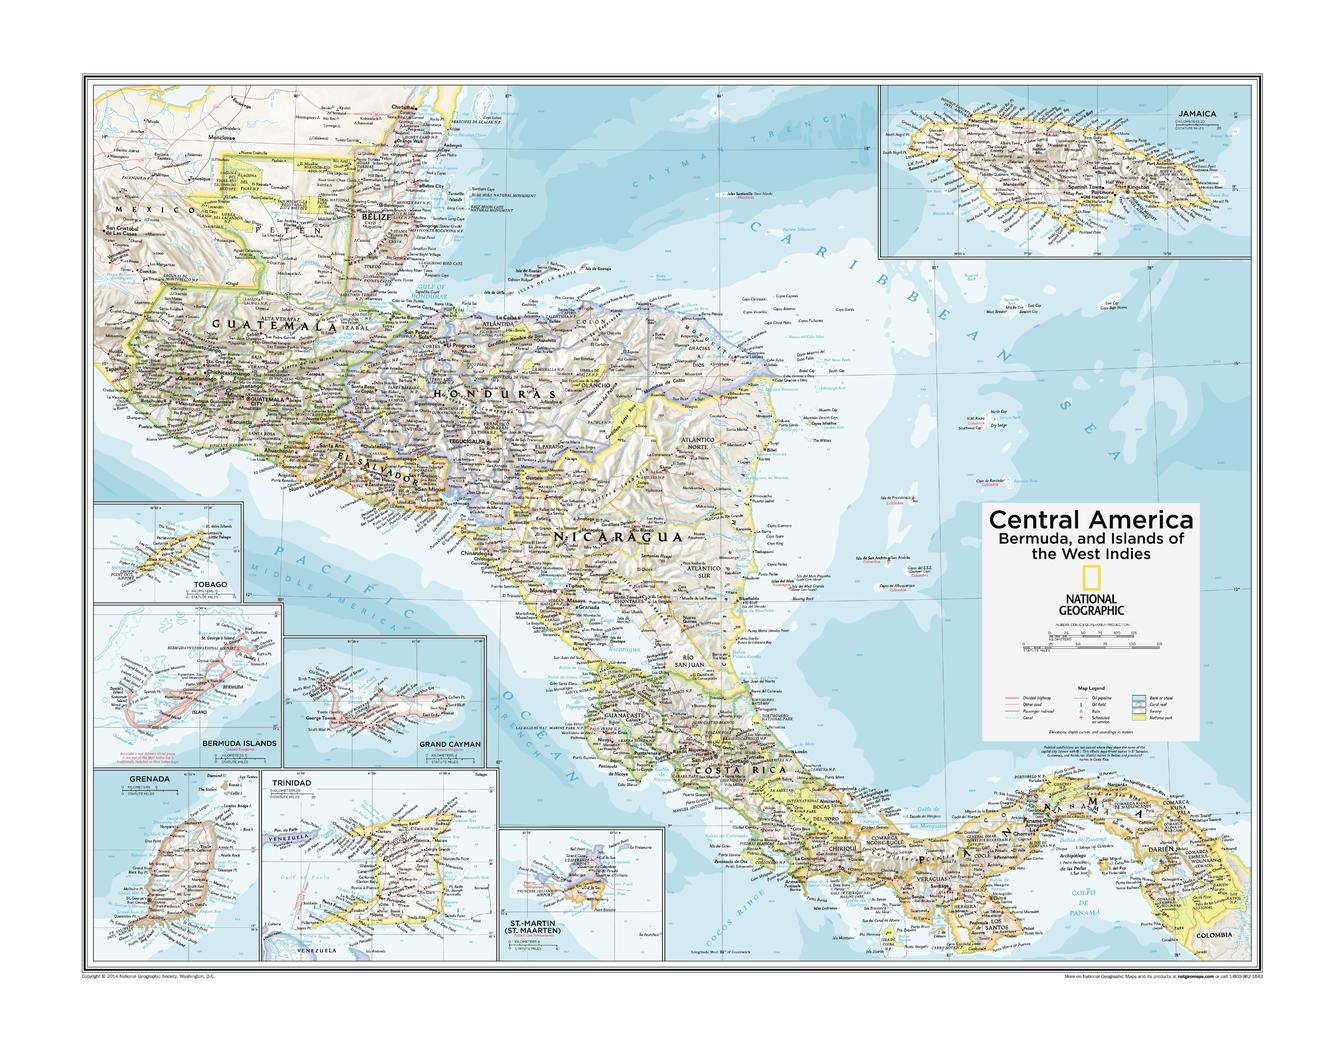 Central America, Bermuda, and Islands of the West Indies